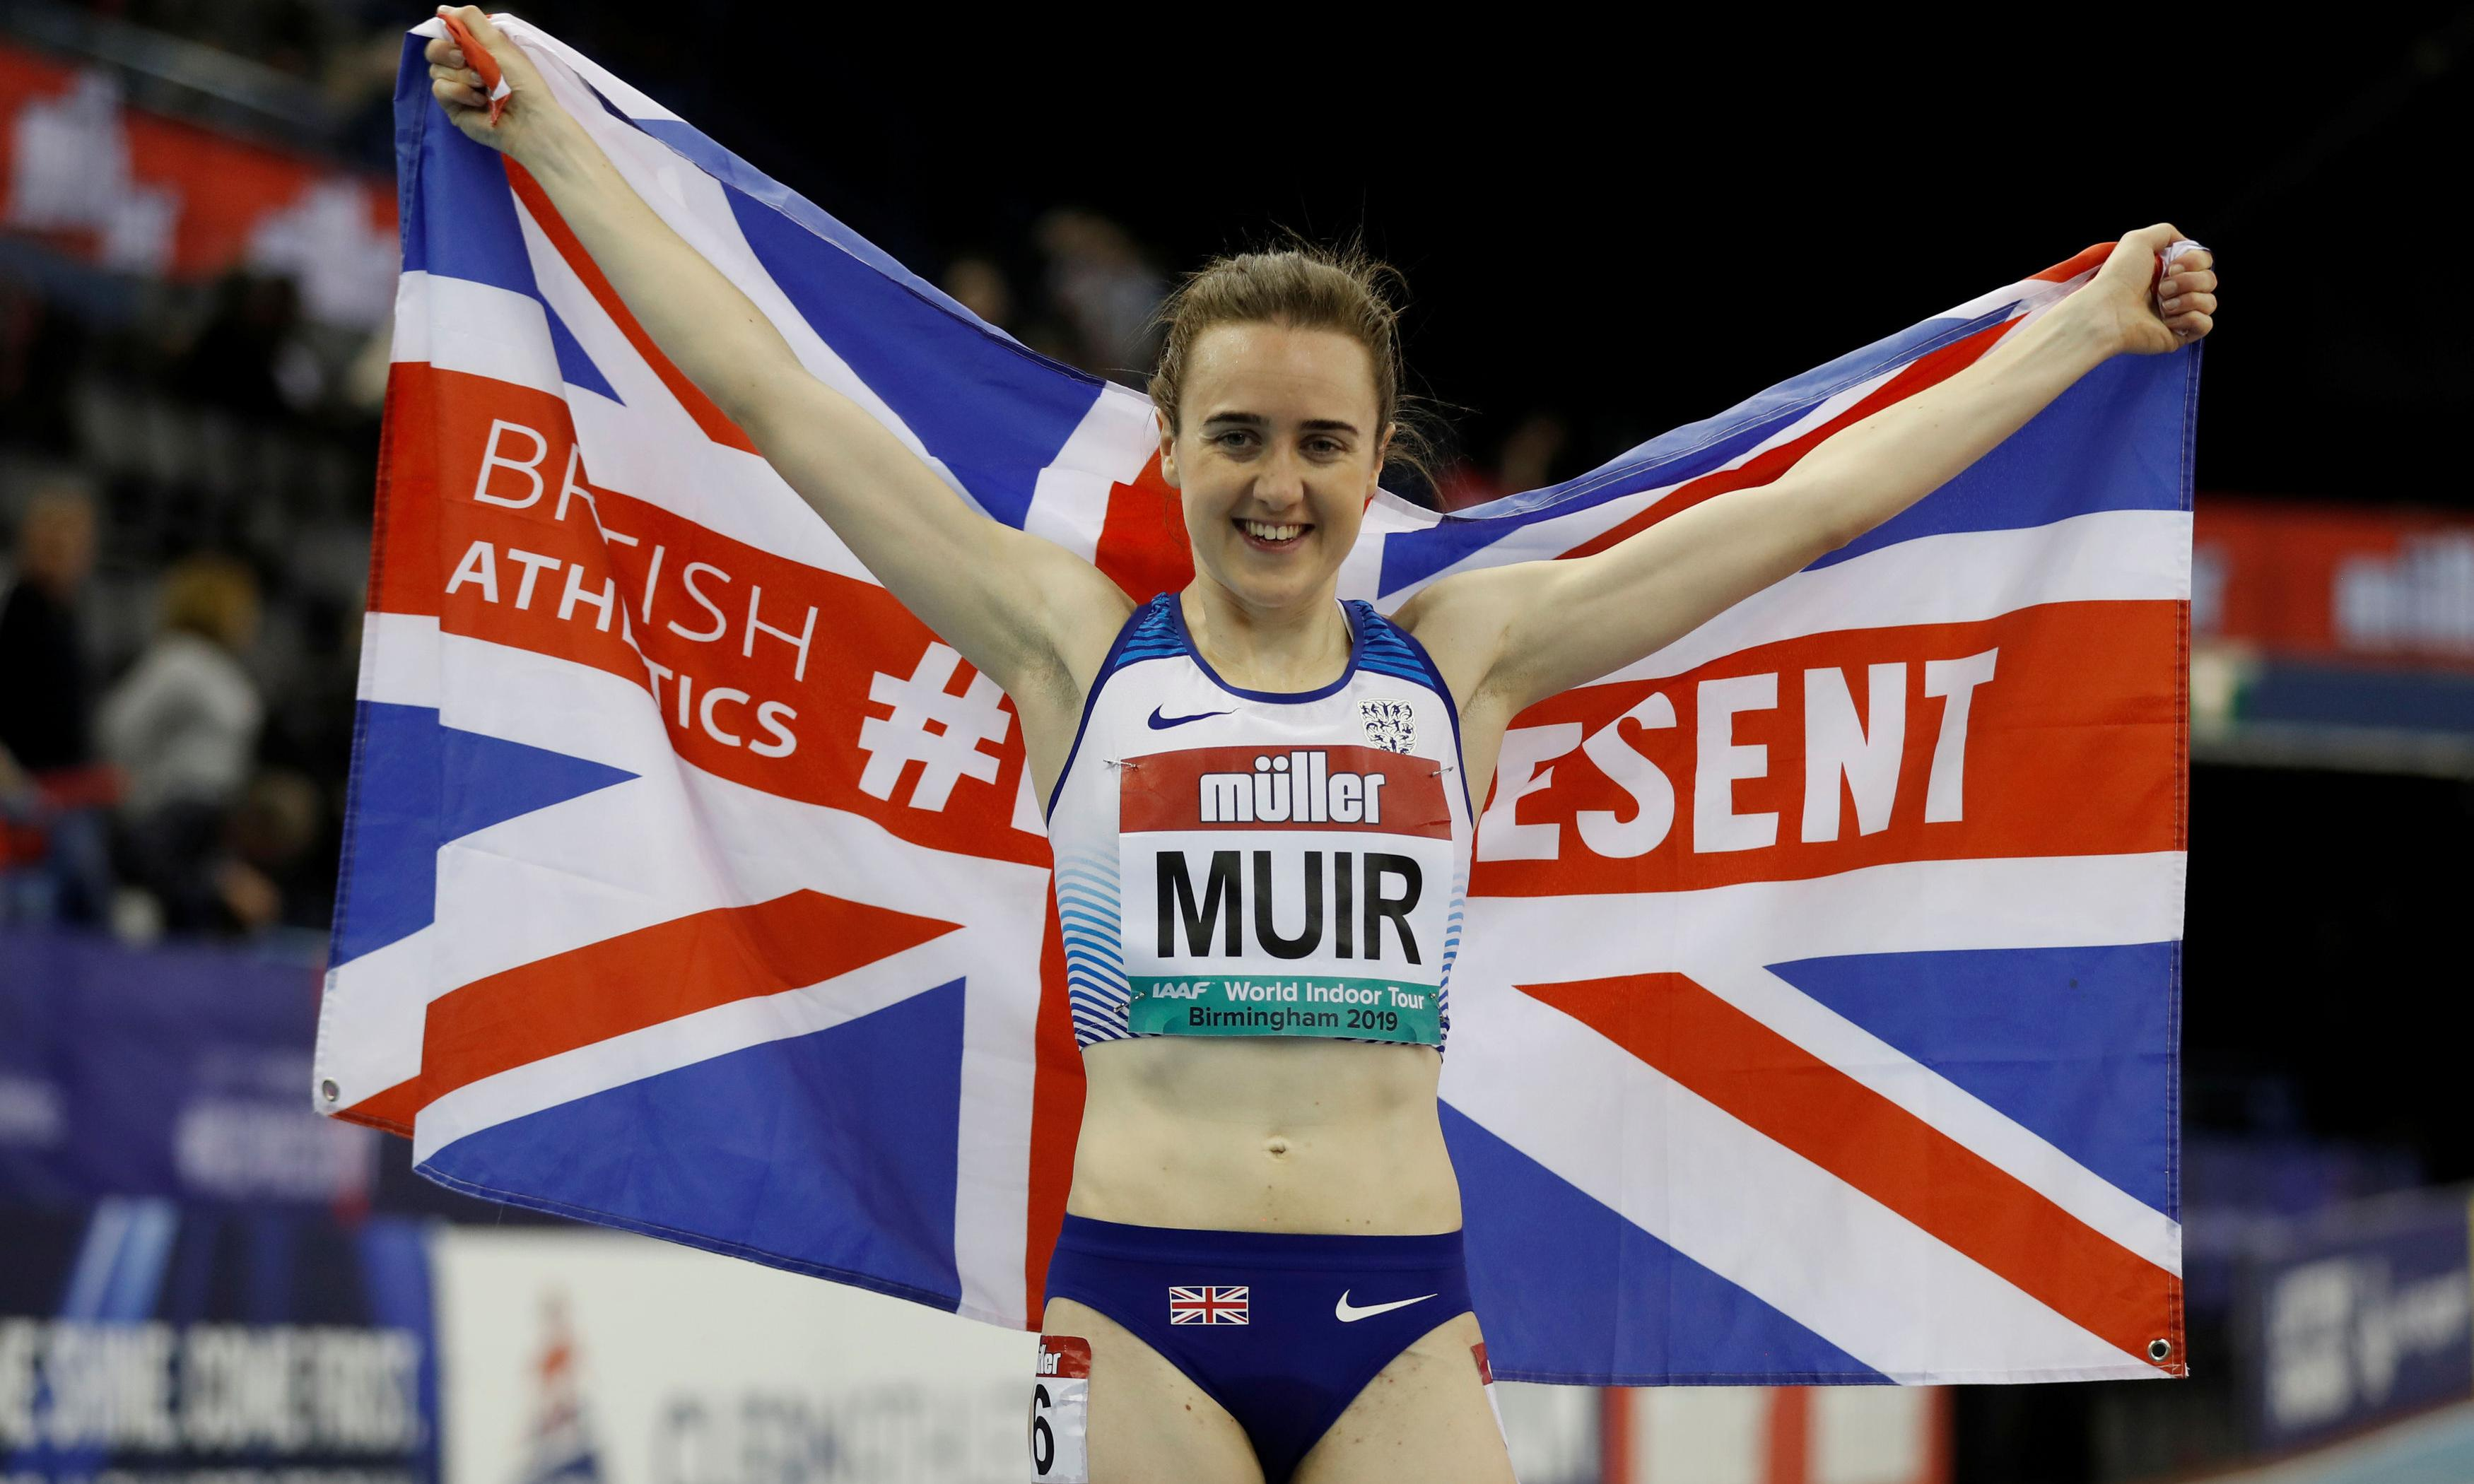 Laura Muir smashes Kirsty Wade's 31-year-old British indoor mile record